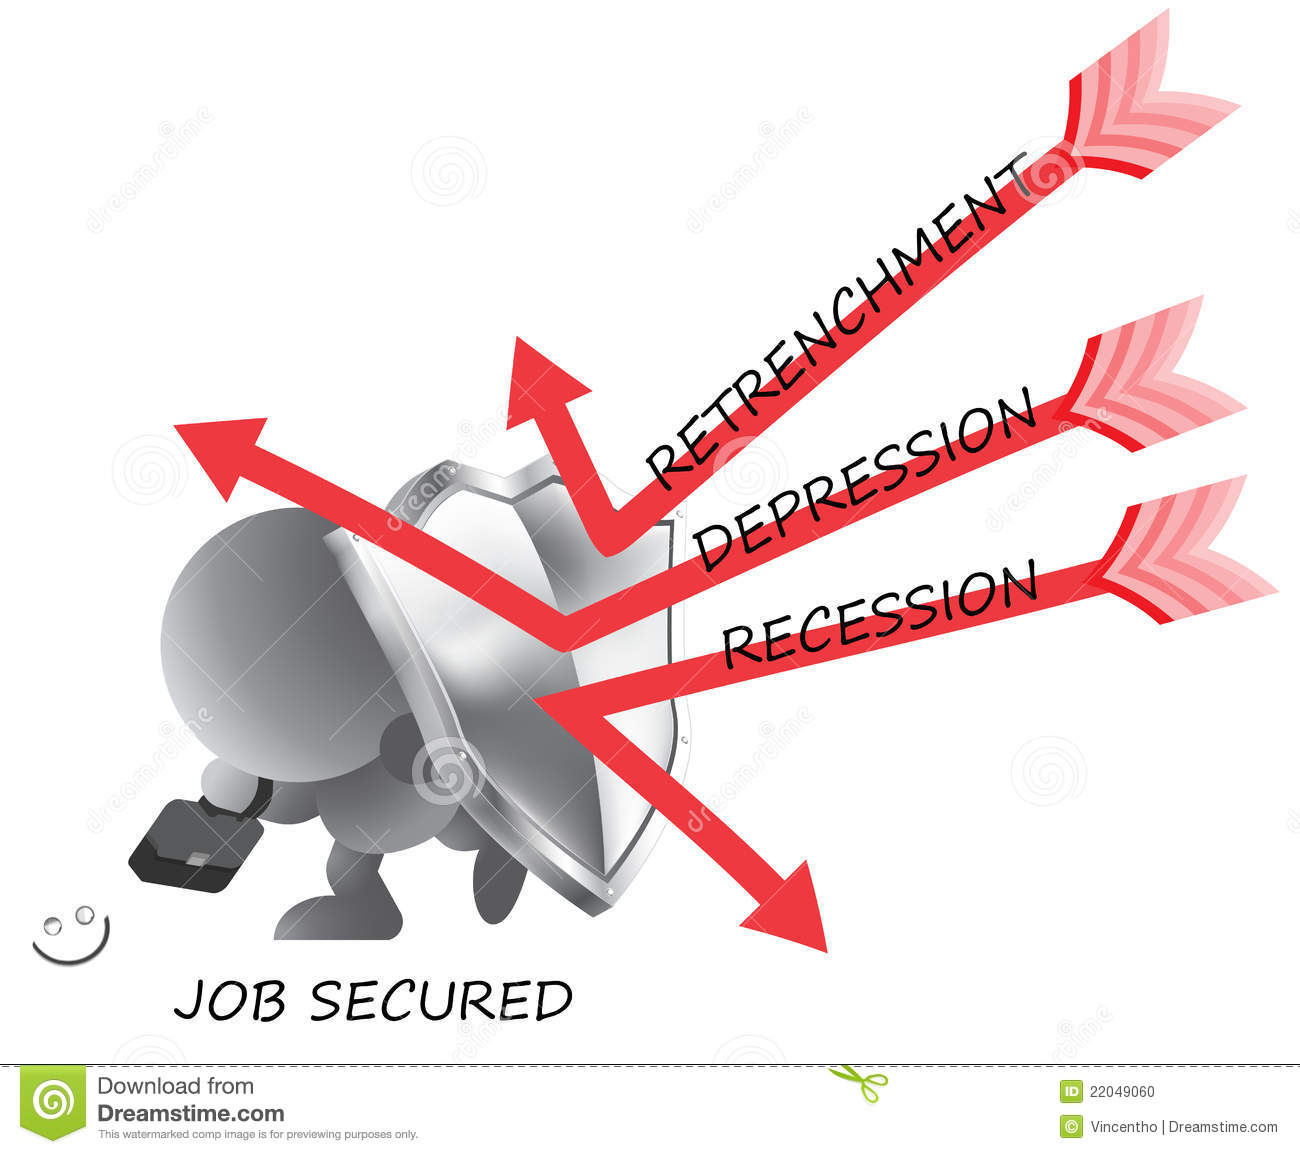 Job security clipart jpg library library Job Security Clipart - Clipart Kid jpg library library